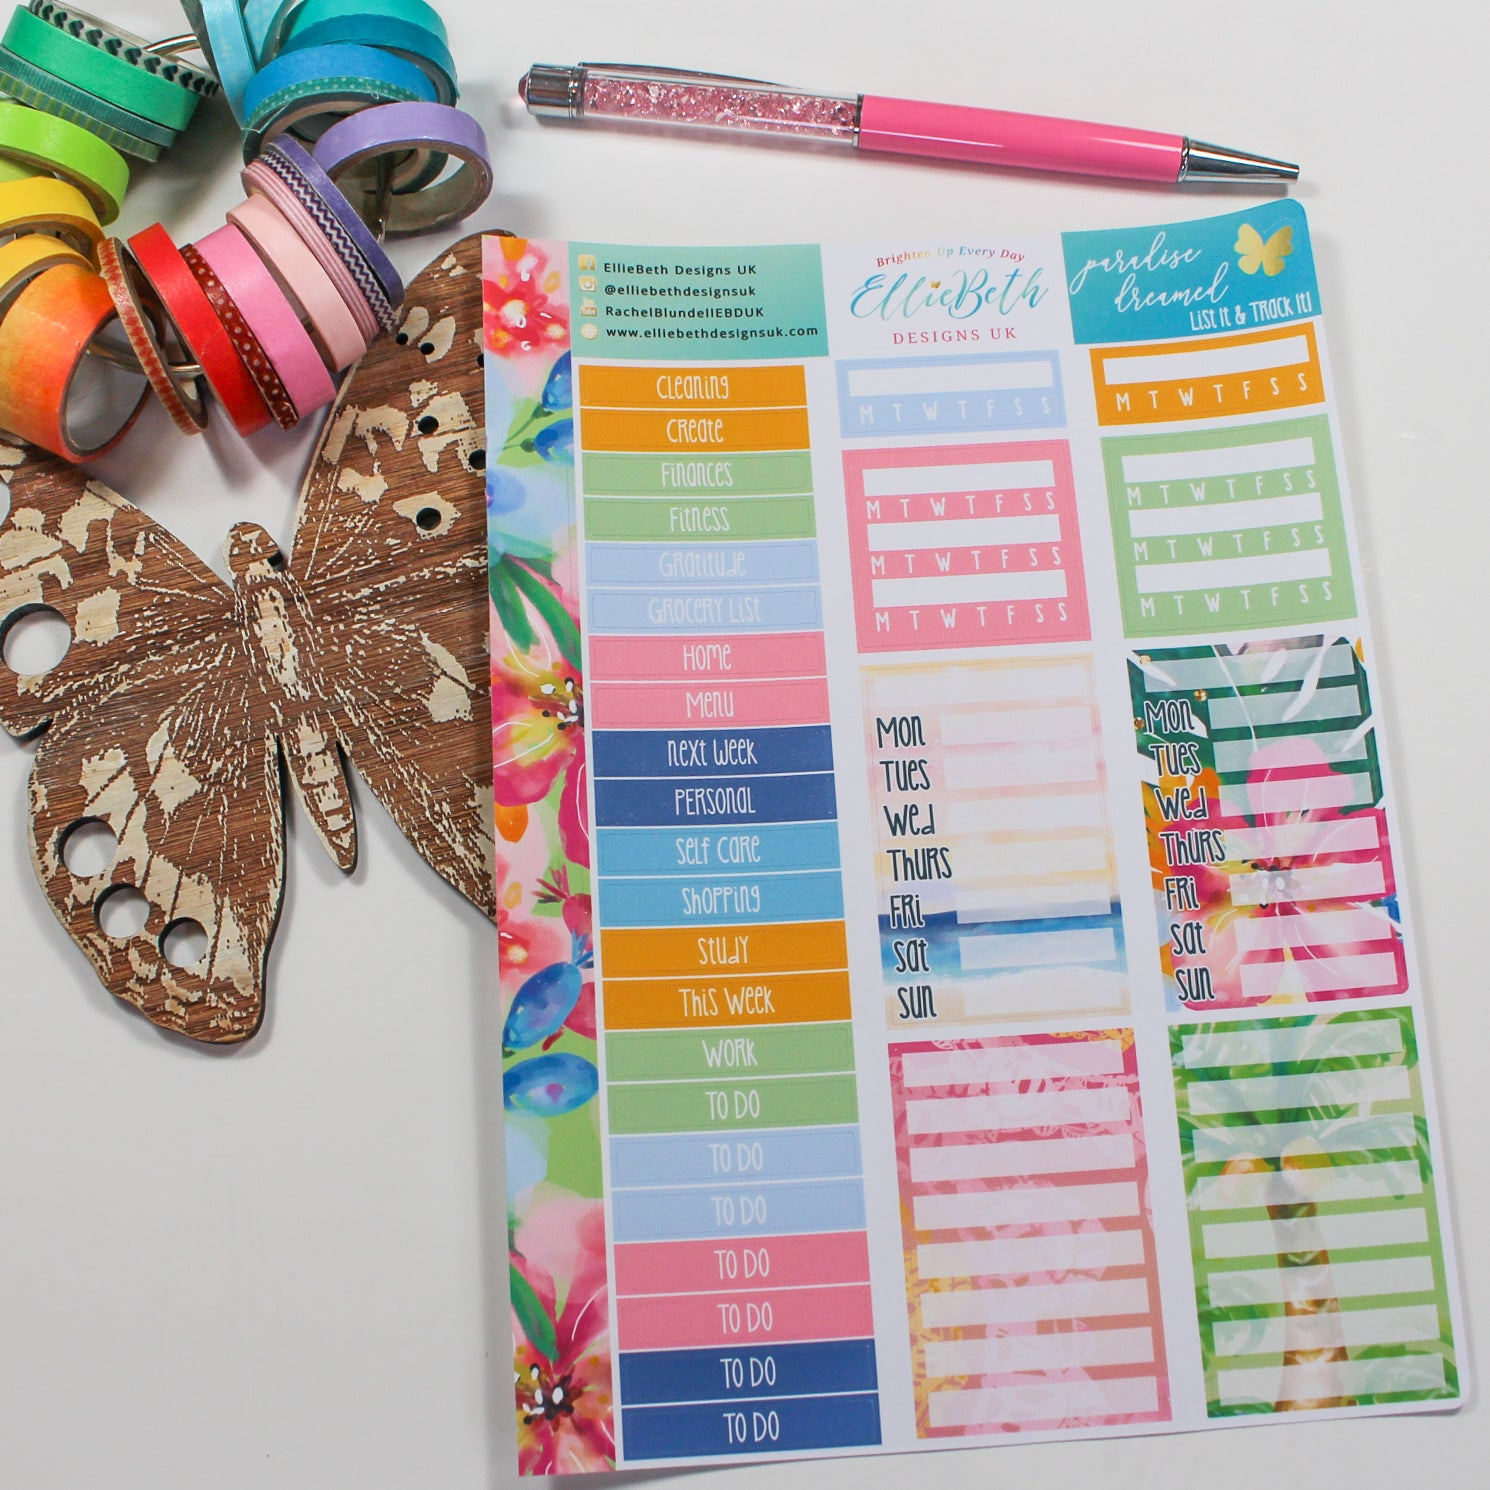 'Paradise Dreamed' - List It & Track It -  A5 binder ready planner stickers